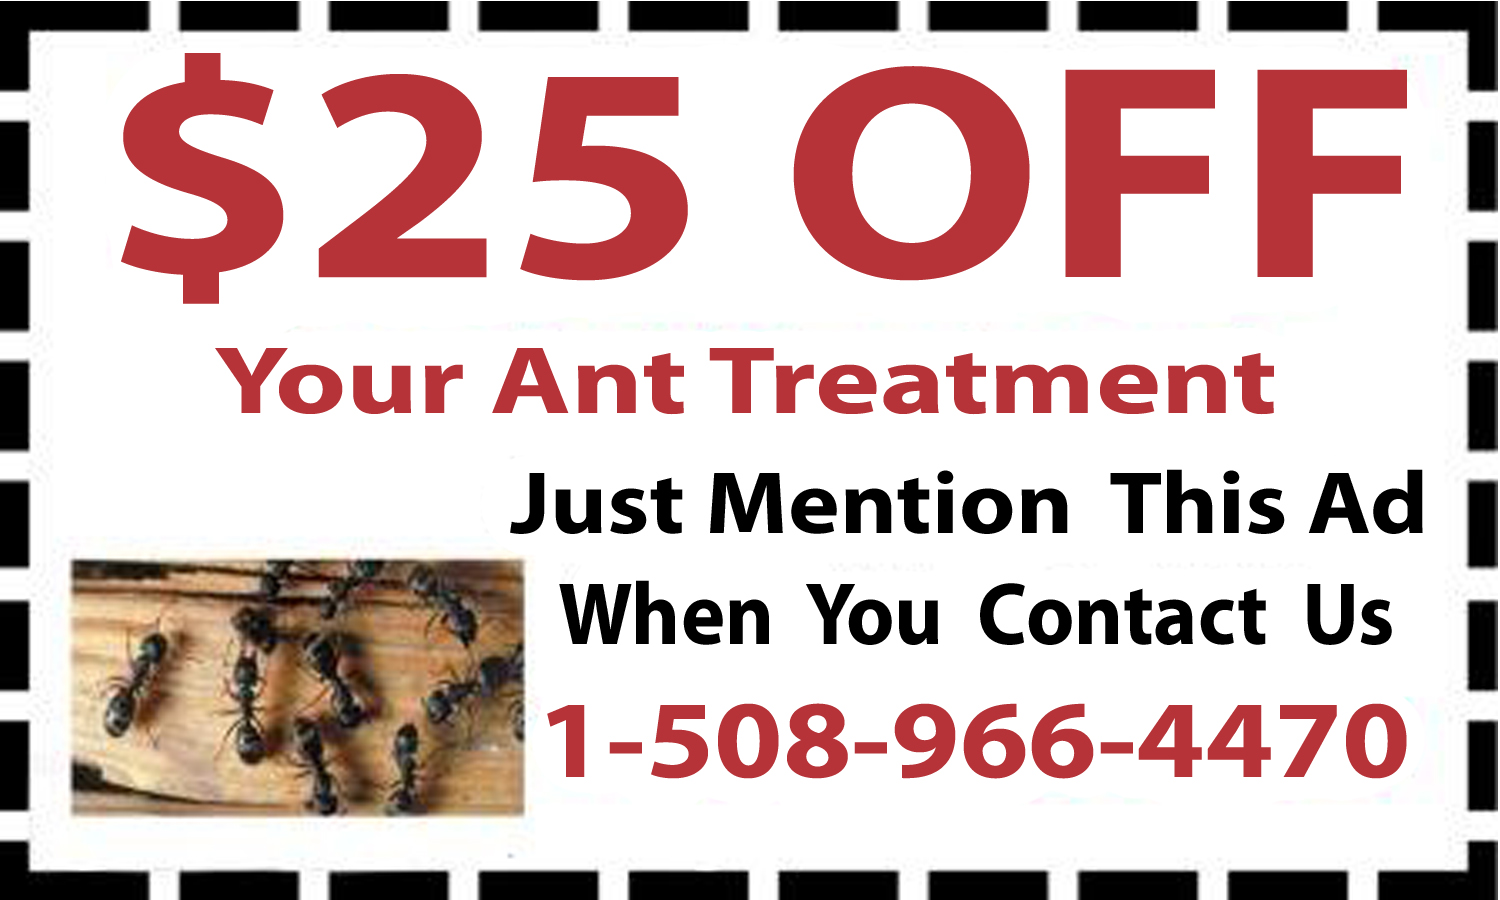 Hopedale, MA Ant Removal Coupon